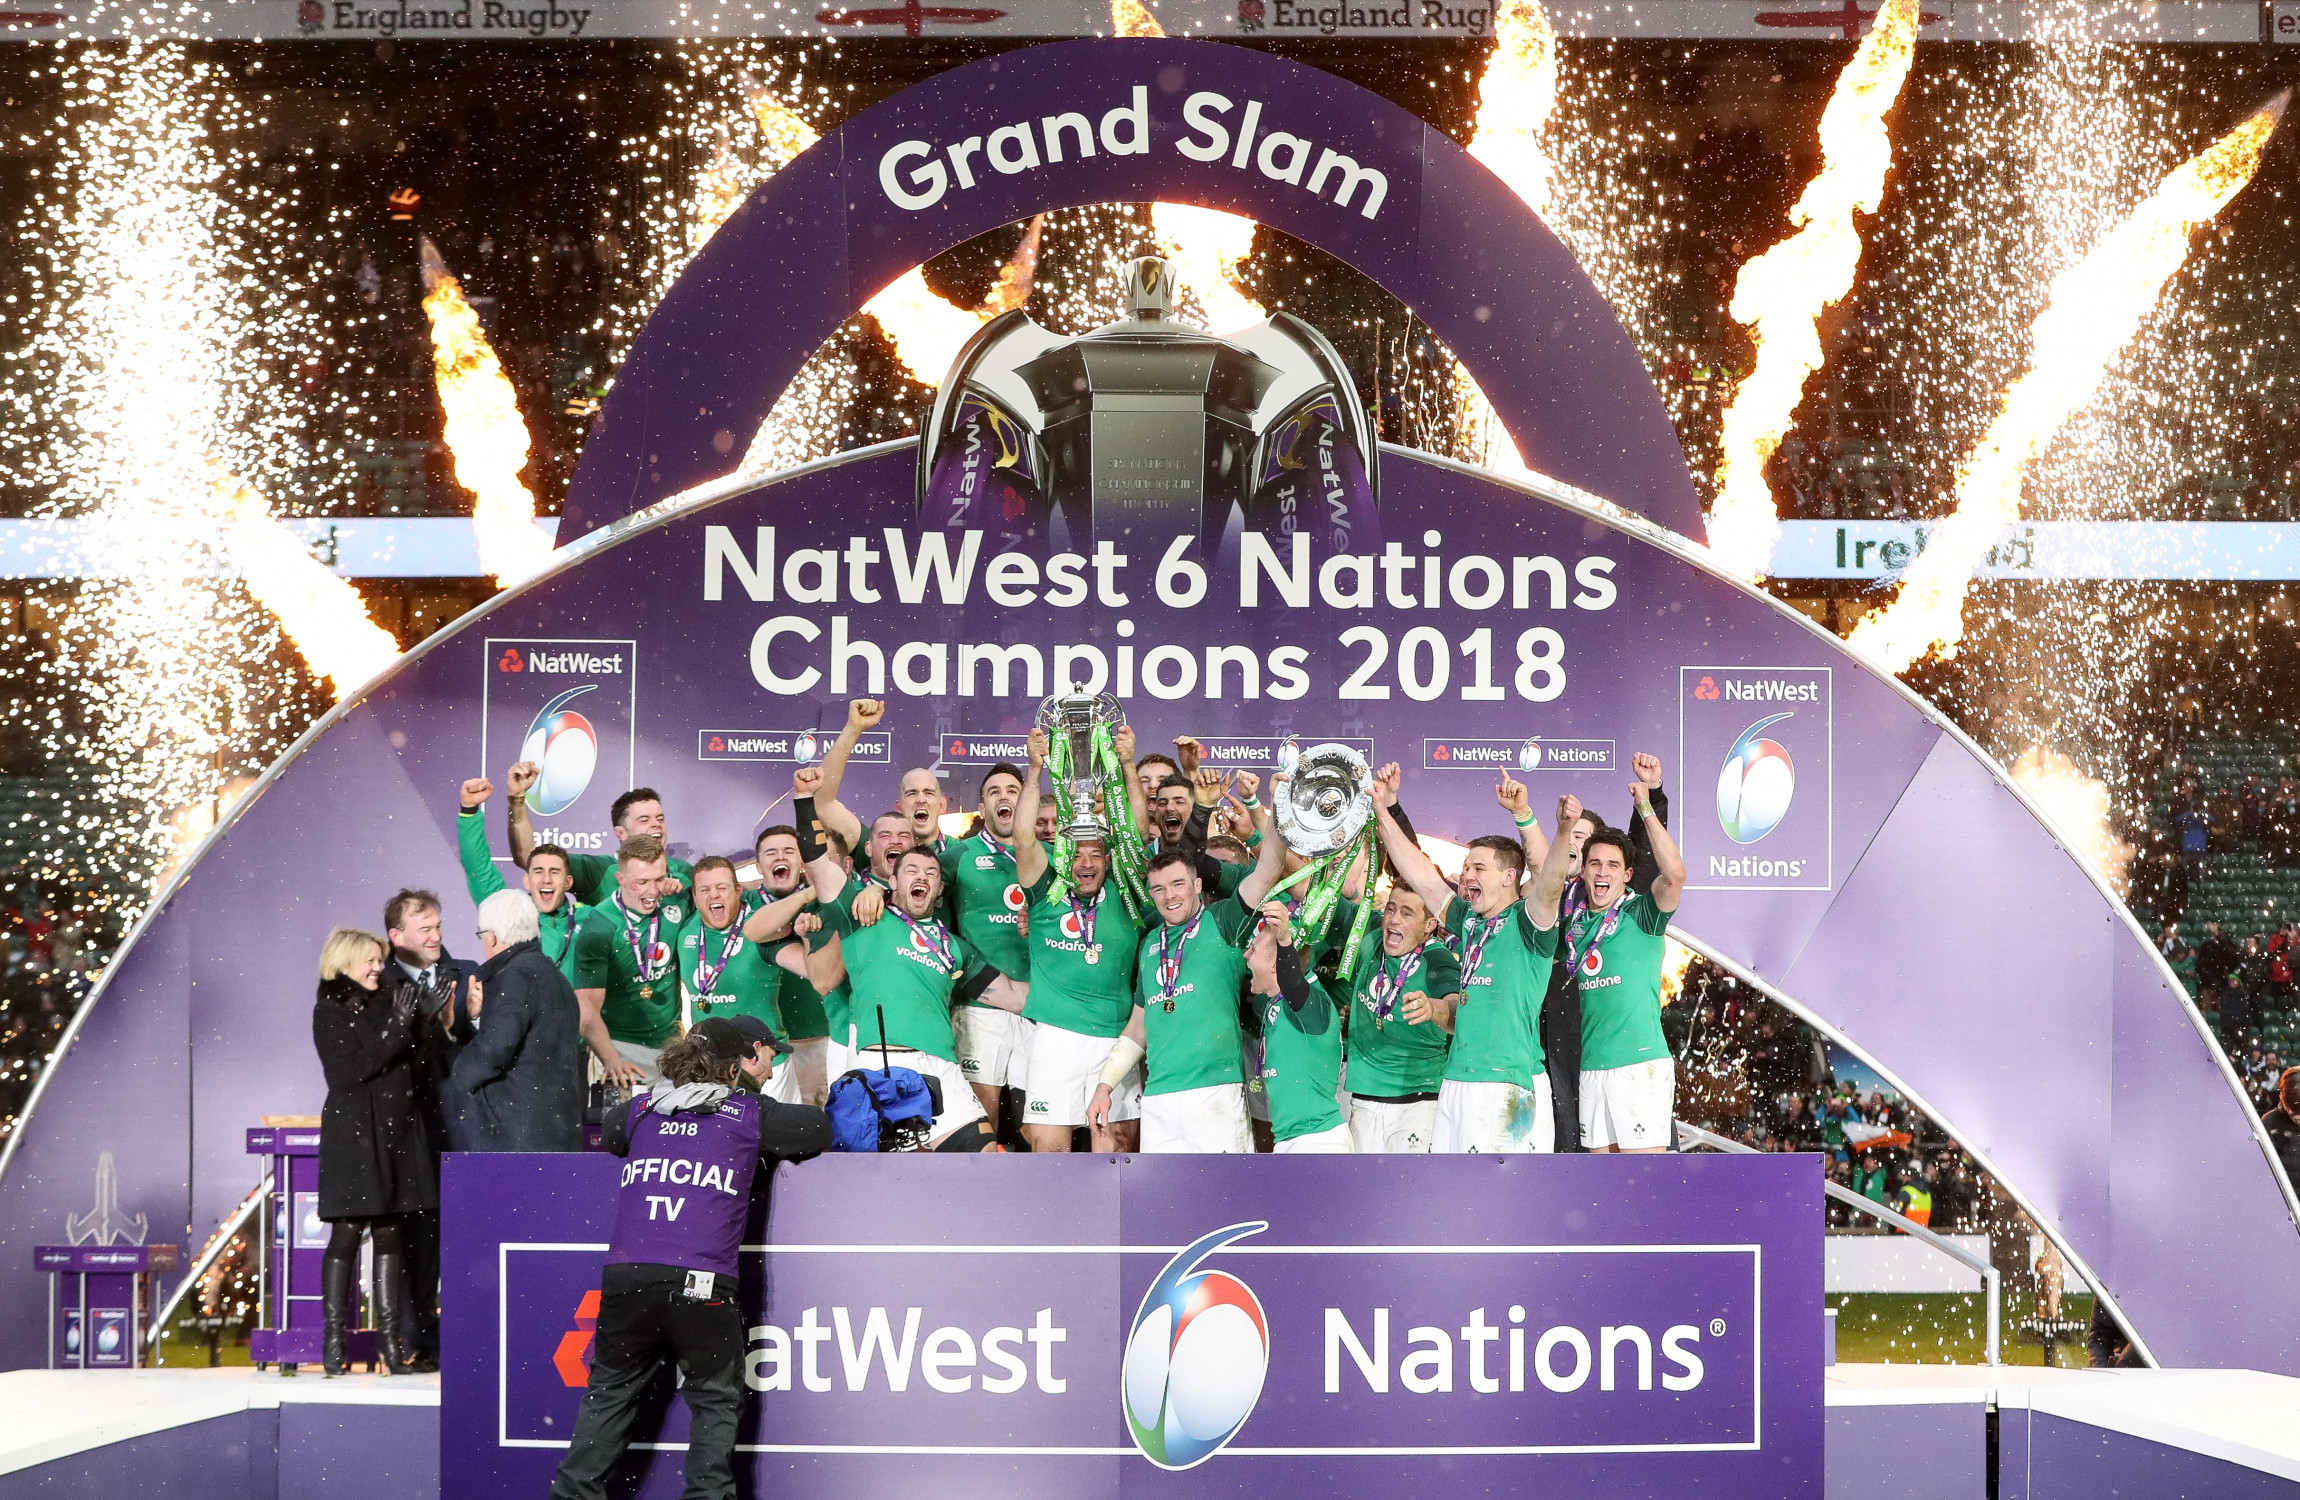 Ireland annihilate England to WIN The Grand Slam & The Six Nations